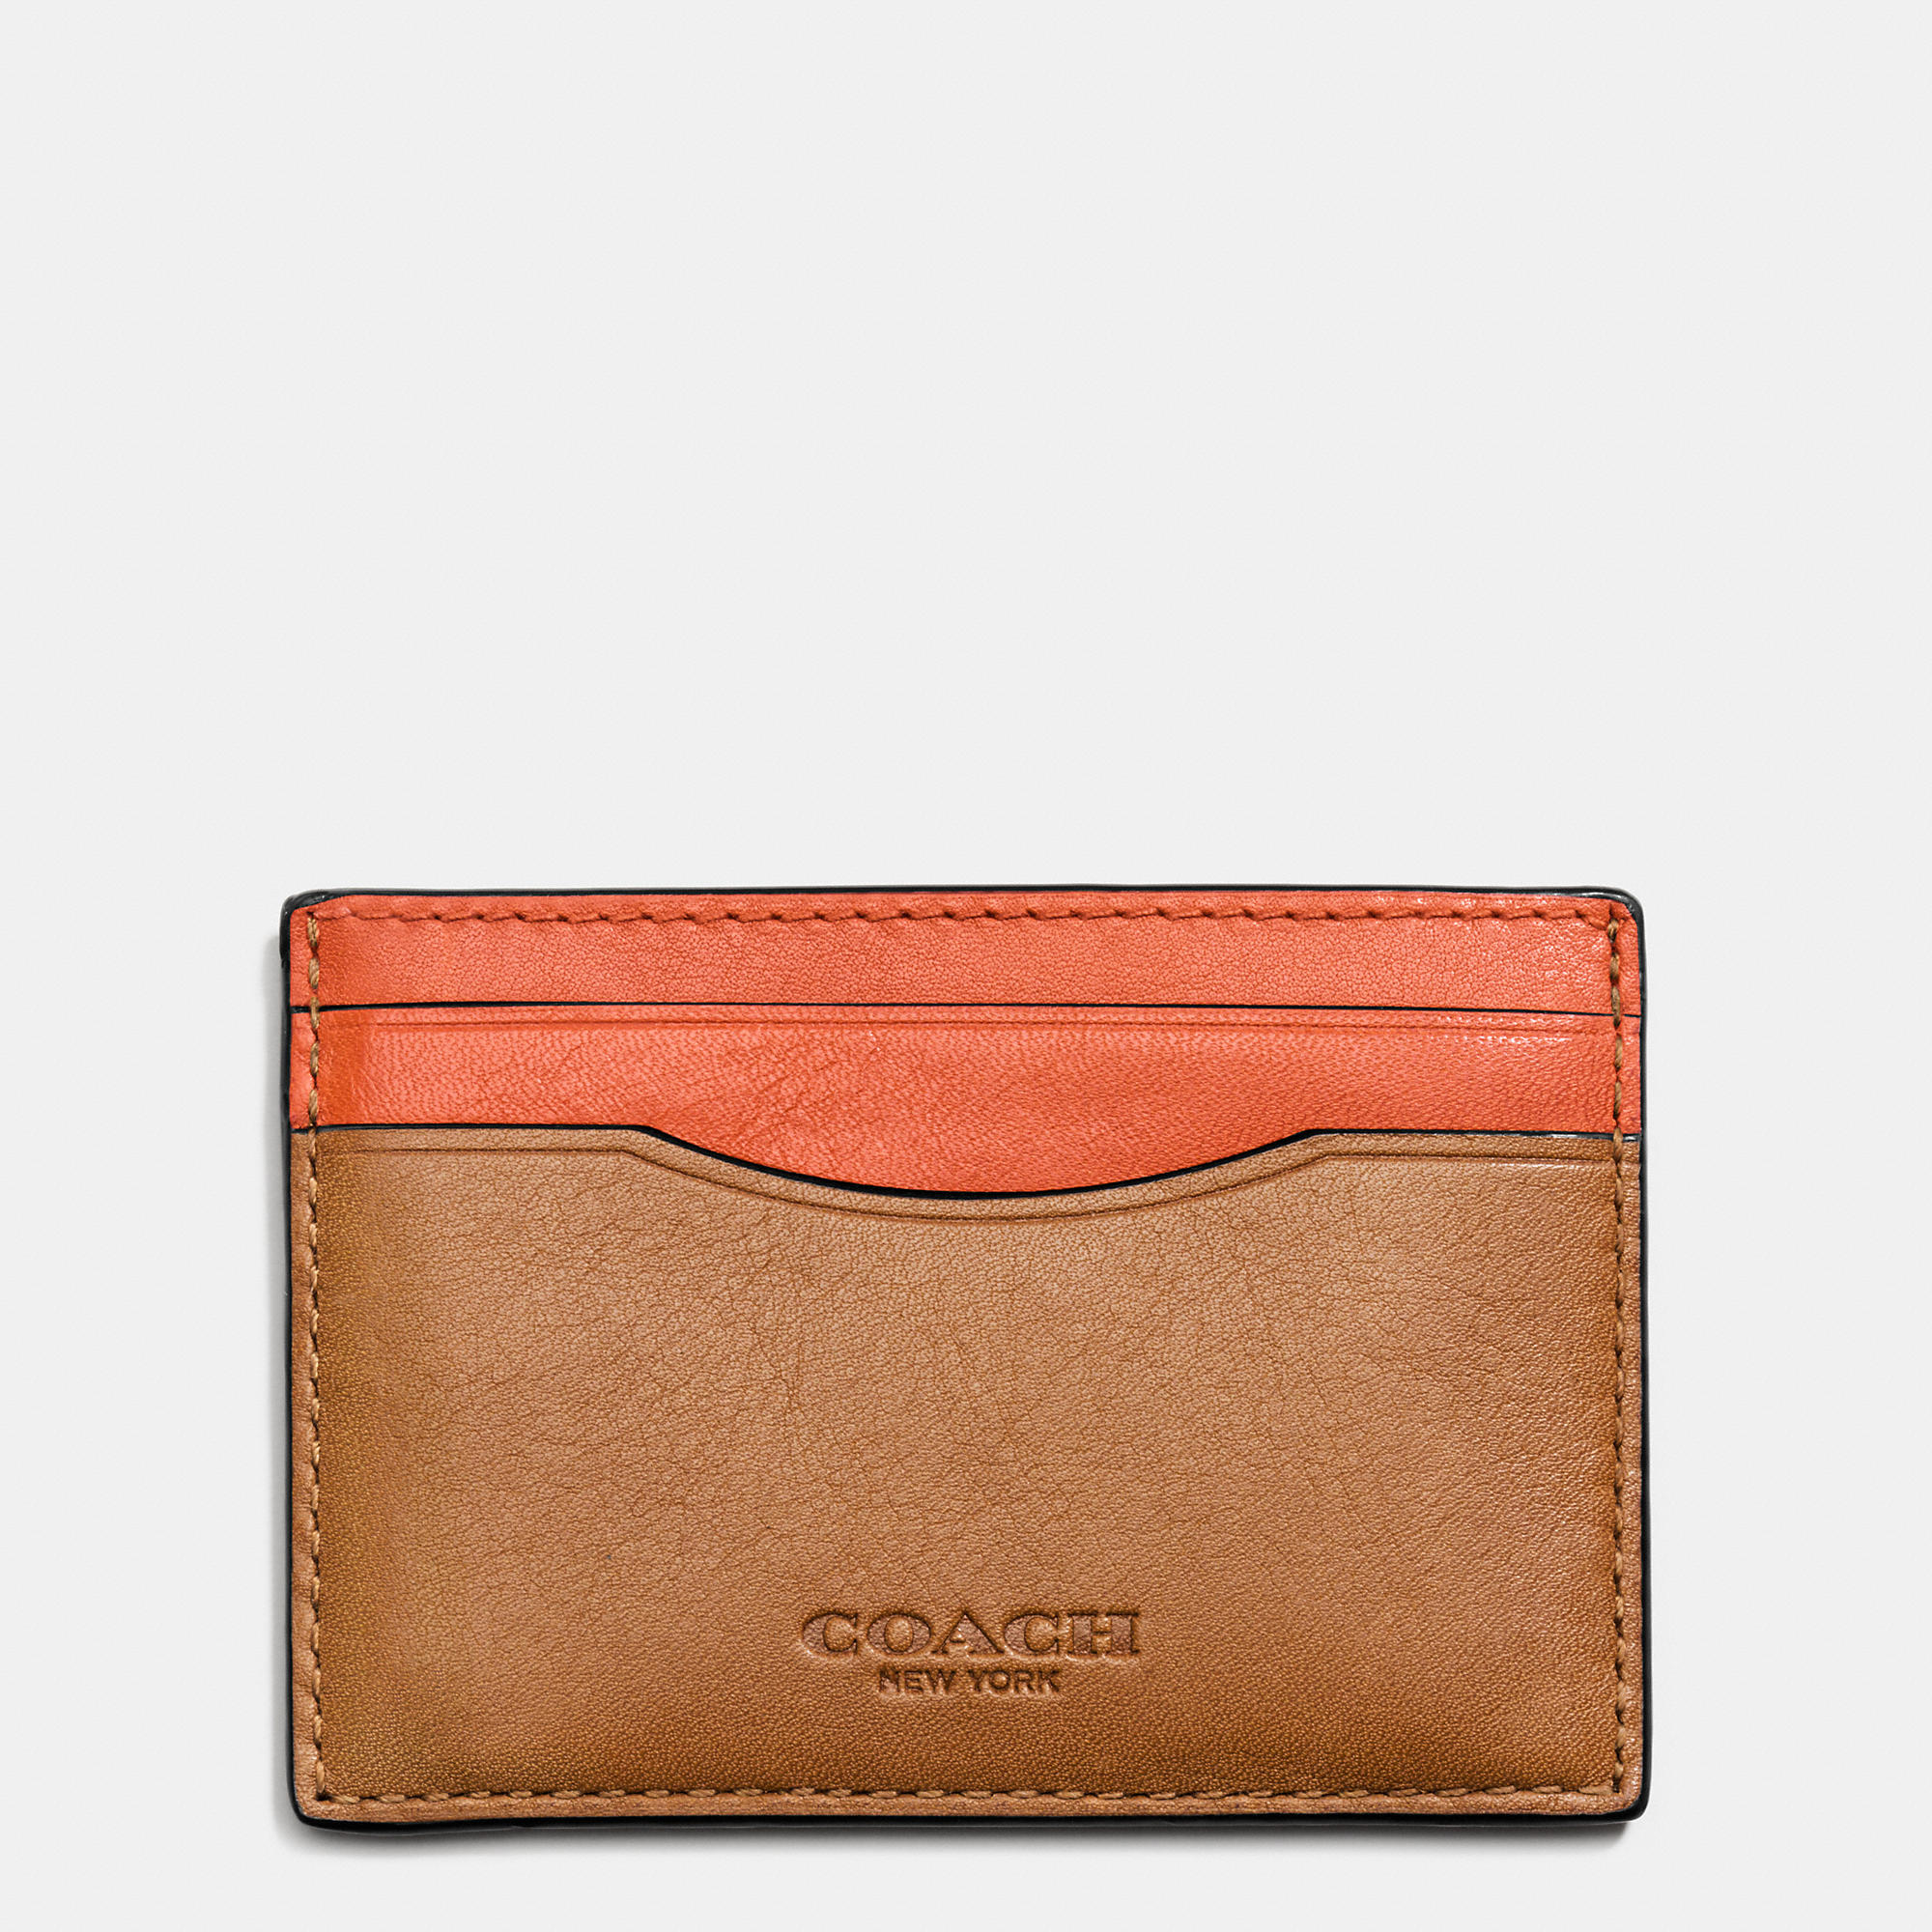 Coach Iphone S Wallet